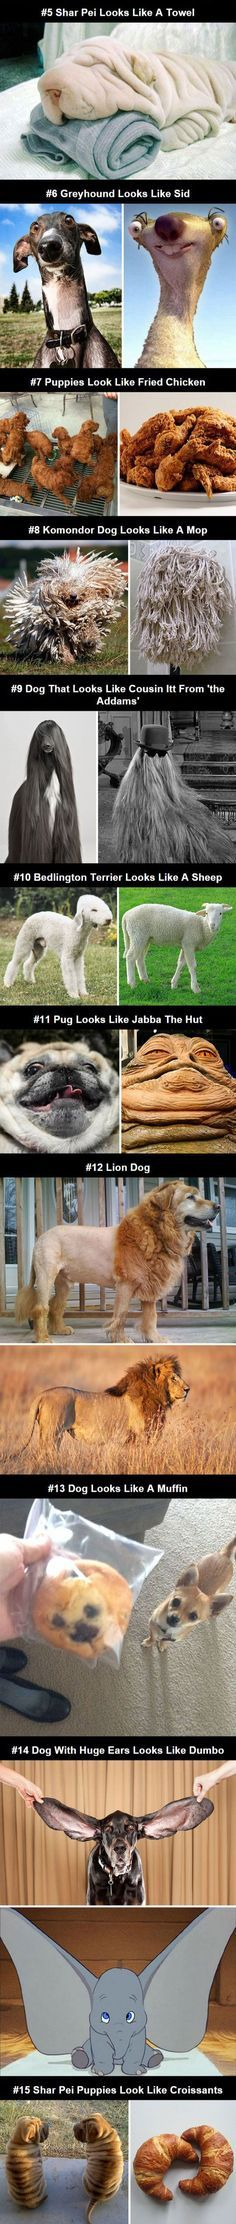 Dogs That Look Like Other Things Cute Dogs Funny Chicken Funny Dog